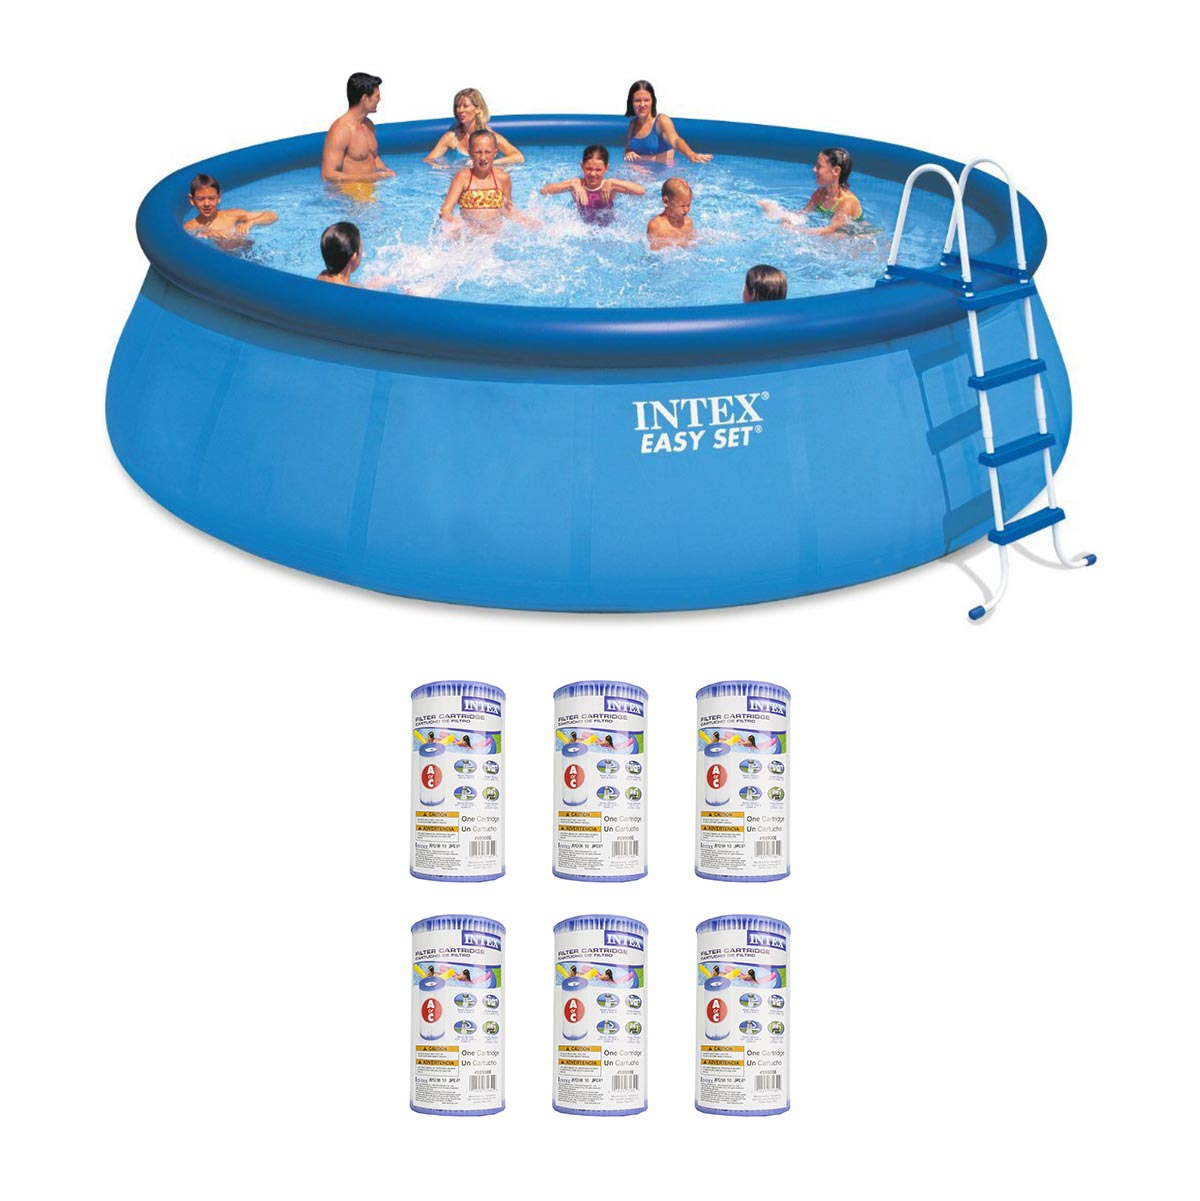 "Intex 18' x 48"" Inflatable Easy Set Above Ground Pool Set + Filter Cartridge (6)"